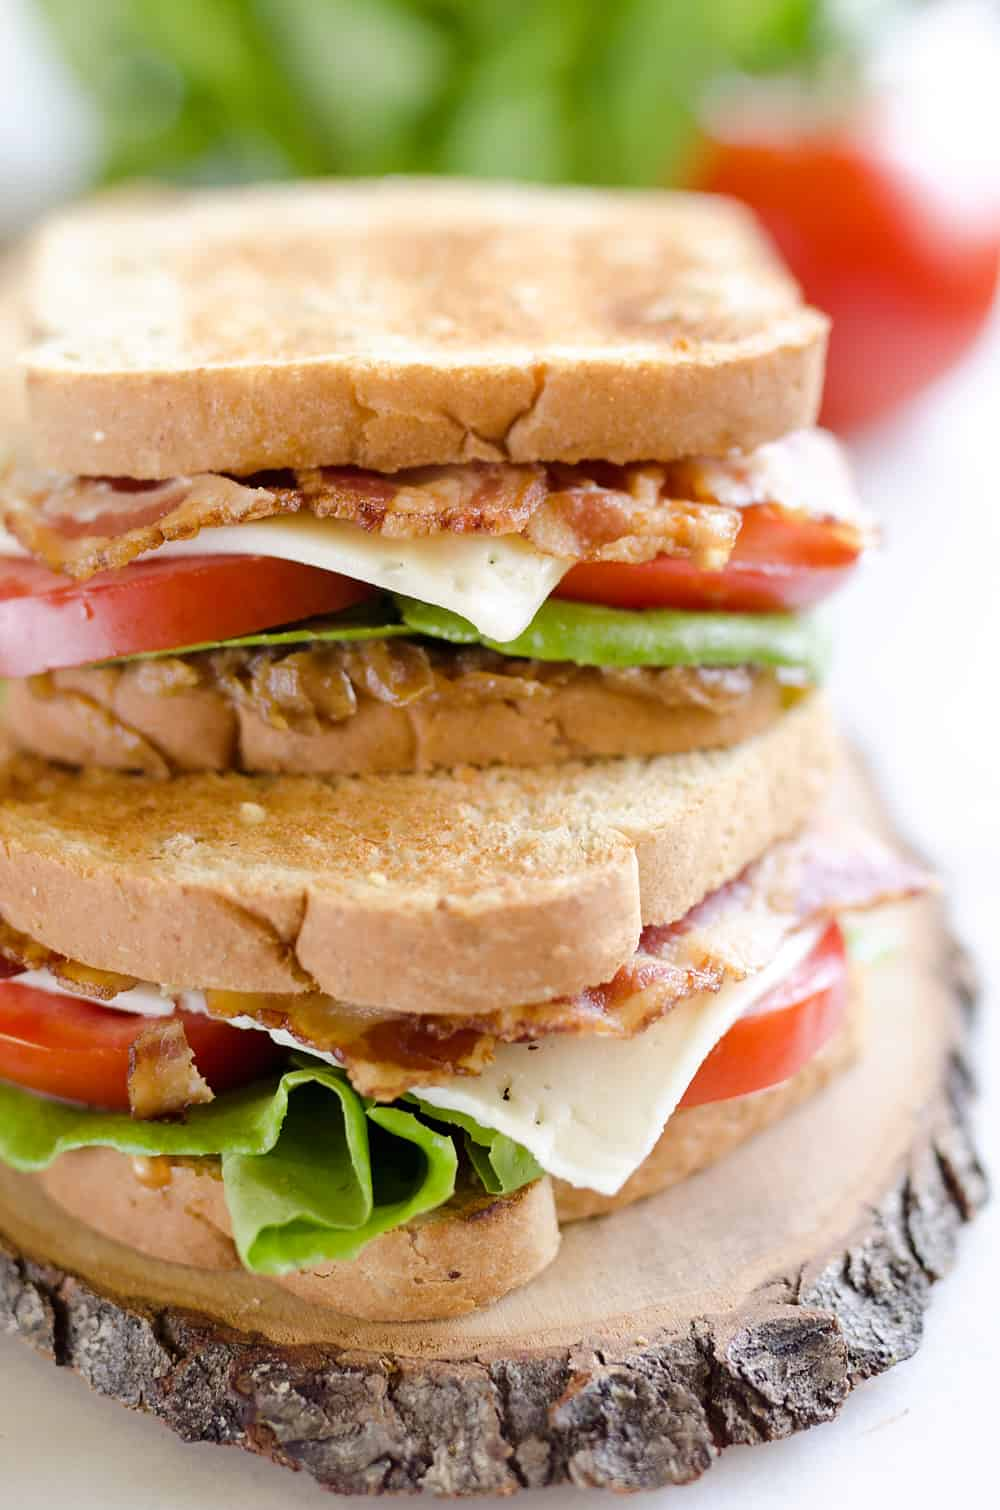 This Ultimate BLT is loaded with all the traditional goodness of a BLT, but with a flavorful twist. The addition of sweet caramelized onions and Havarti cheese take this sandwich to the next level!